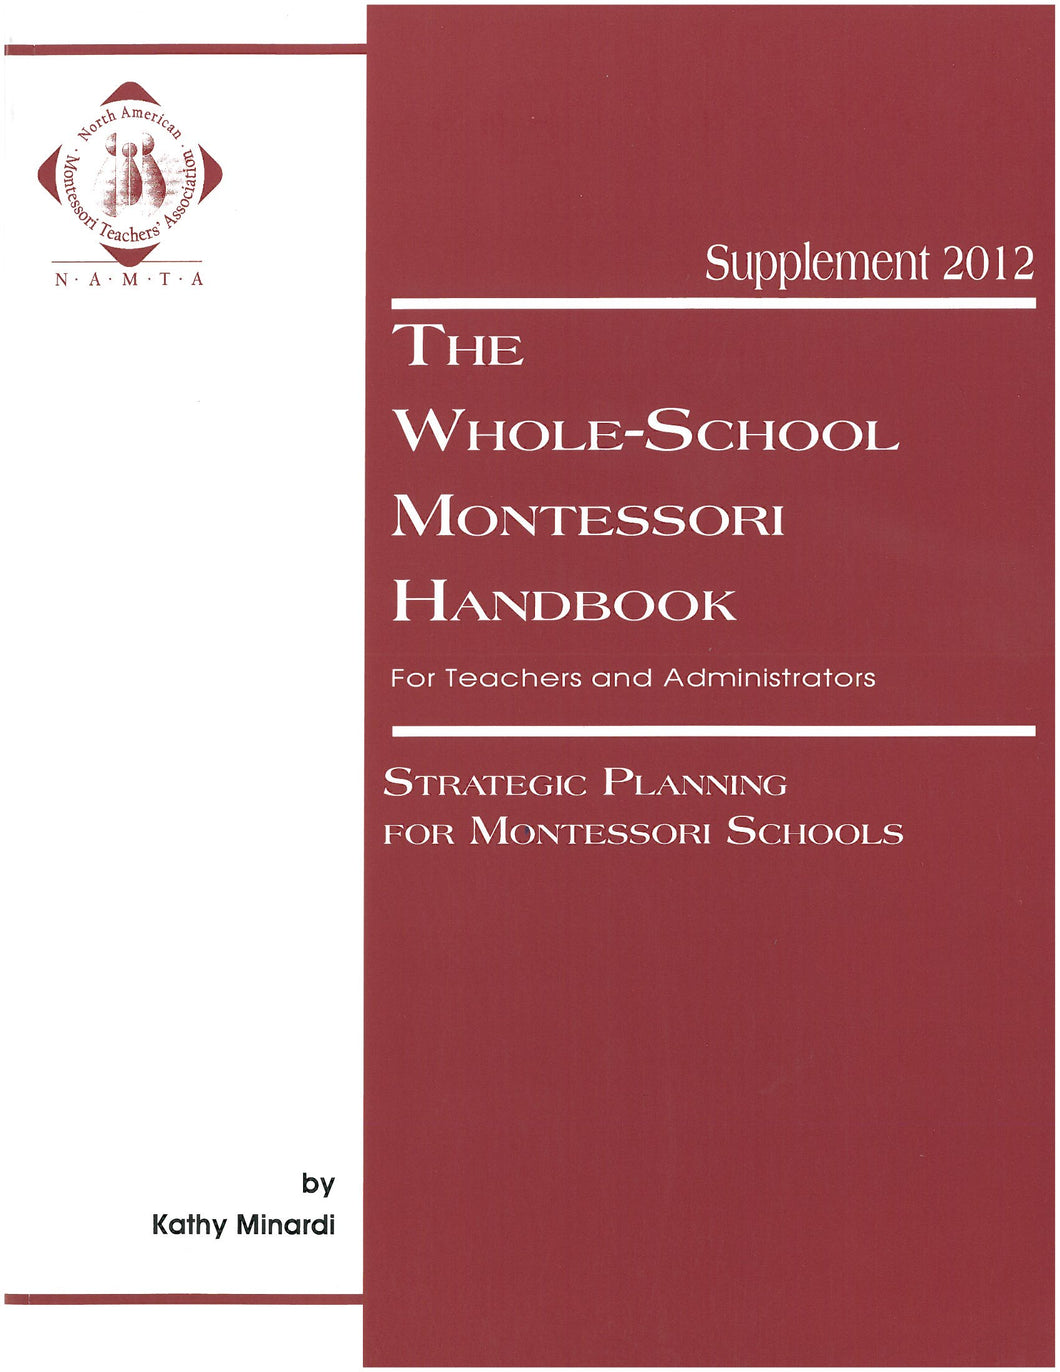 Whole School Handbook, Supplement 2012